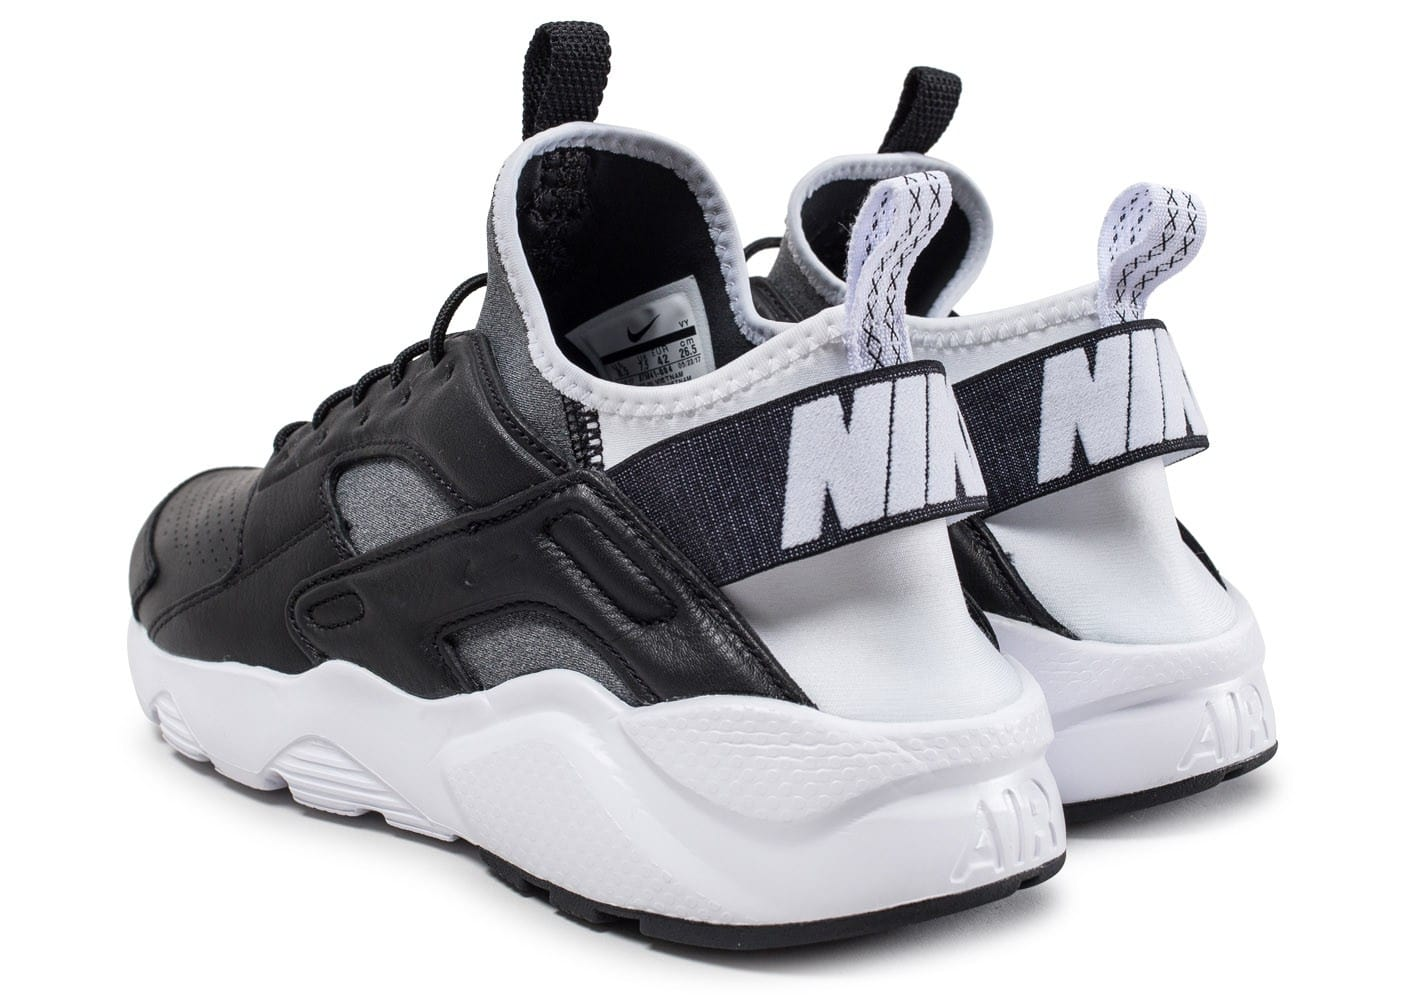 nike air huarache ultra noire et blanche chaussures homme chausport. Black Bedroom Furniture Sets. Home Design Ideas